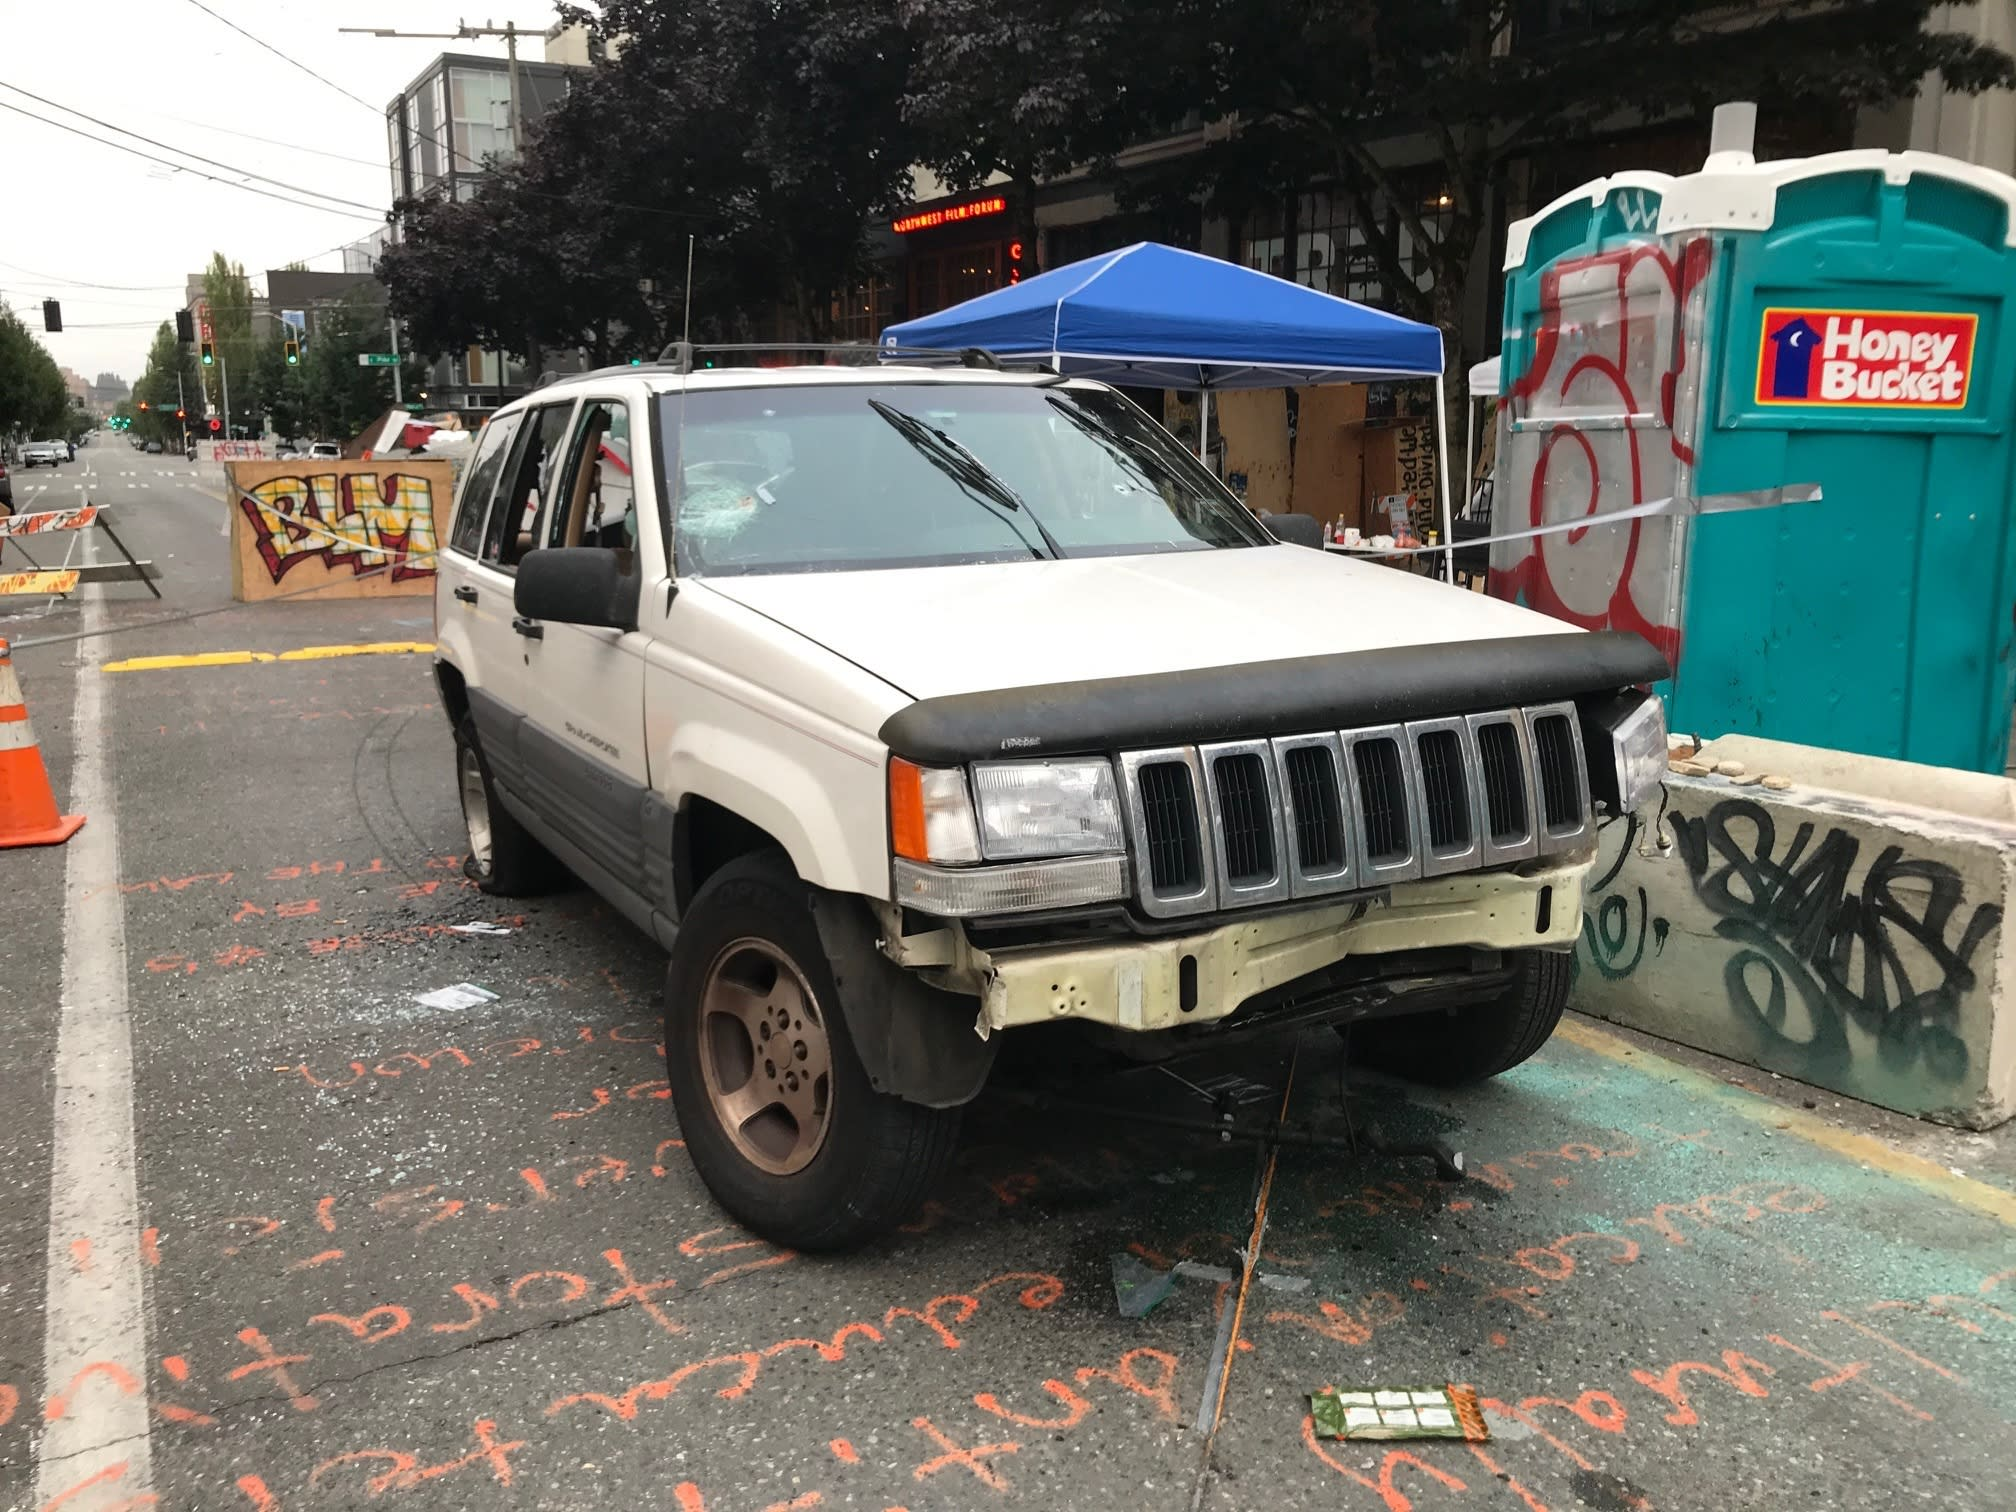 A car sits in the Capitol Hill Organized Protest zone following a shooting in Seattle early Monday, June 29, 2020. At least one man was killed and another was wounded early Monday morning when they were shot in the protest area known as CHOP, after driving the vehicle into the area. (AP Photo/Aron Ranen)